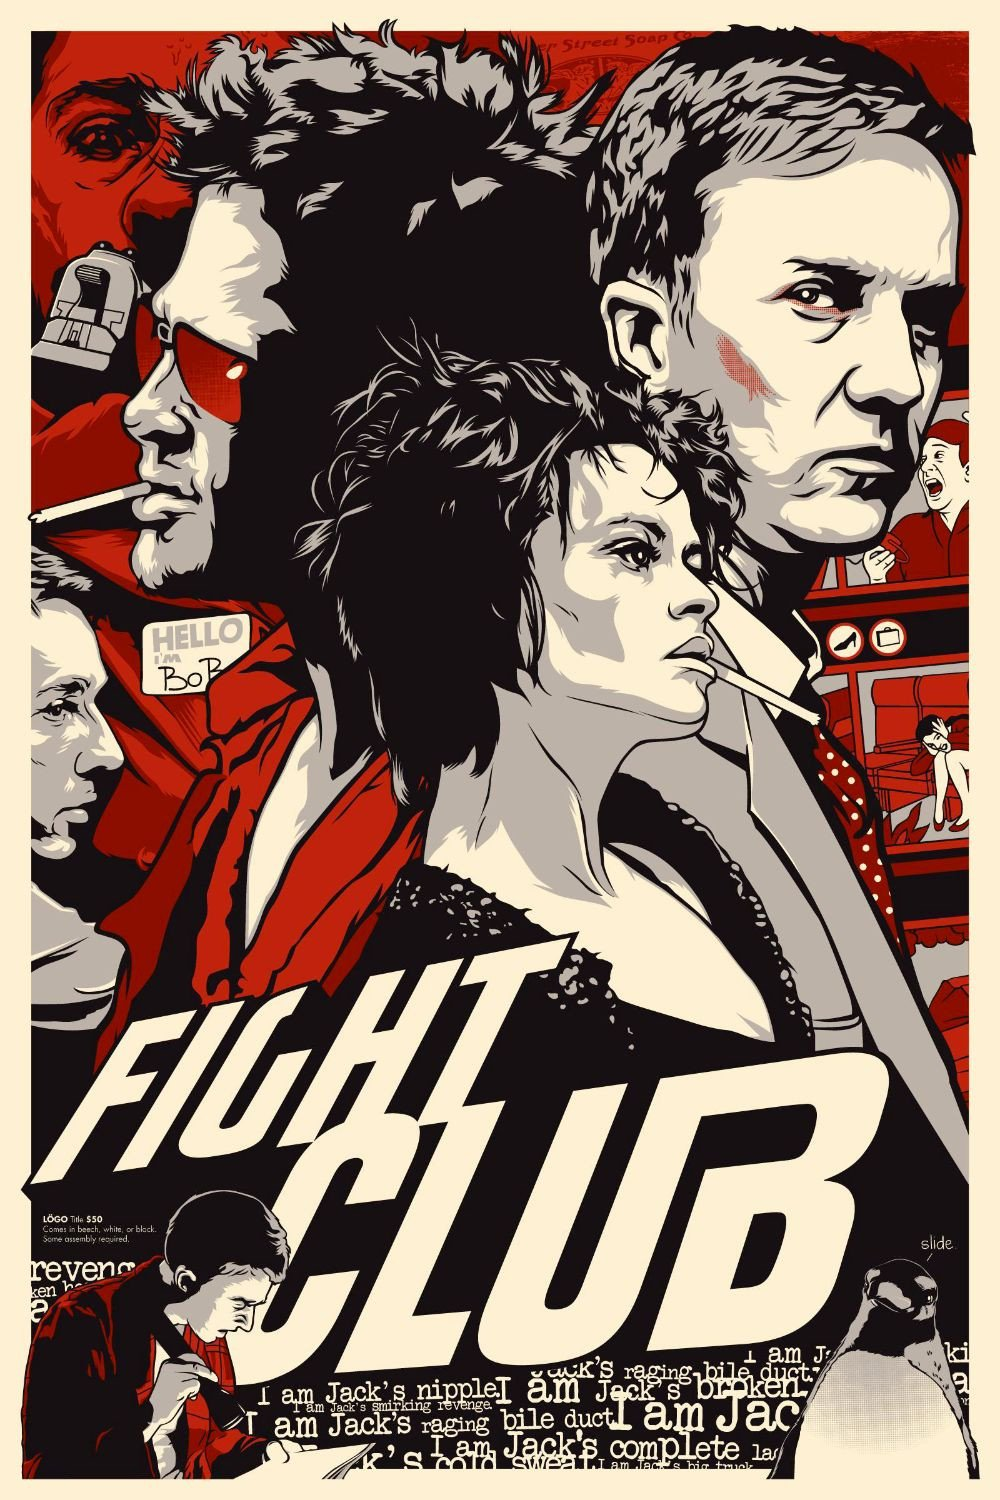 Retro_Art_-_Fight_Club_Poster_-_Hollywood_Collection.jpg